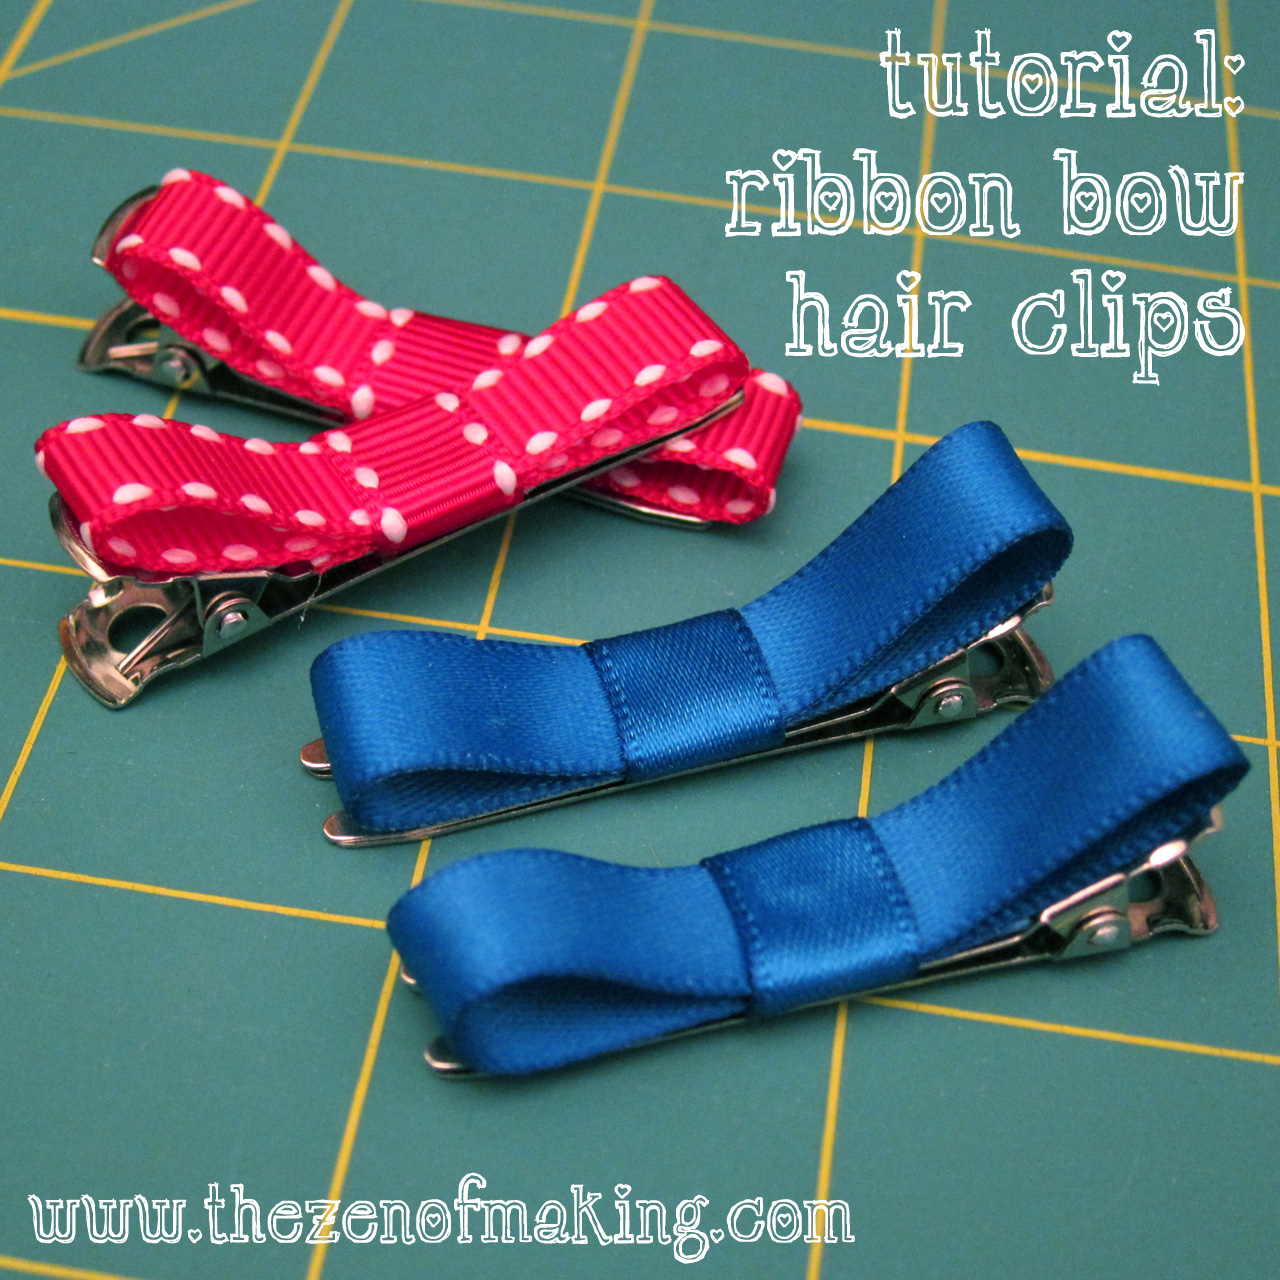 Tutorial: Ribbon Bow Hair Clips